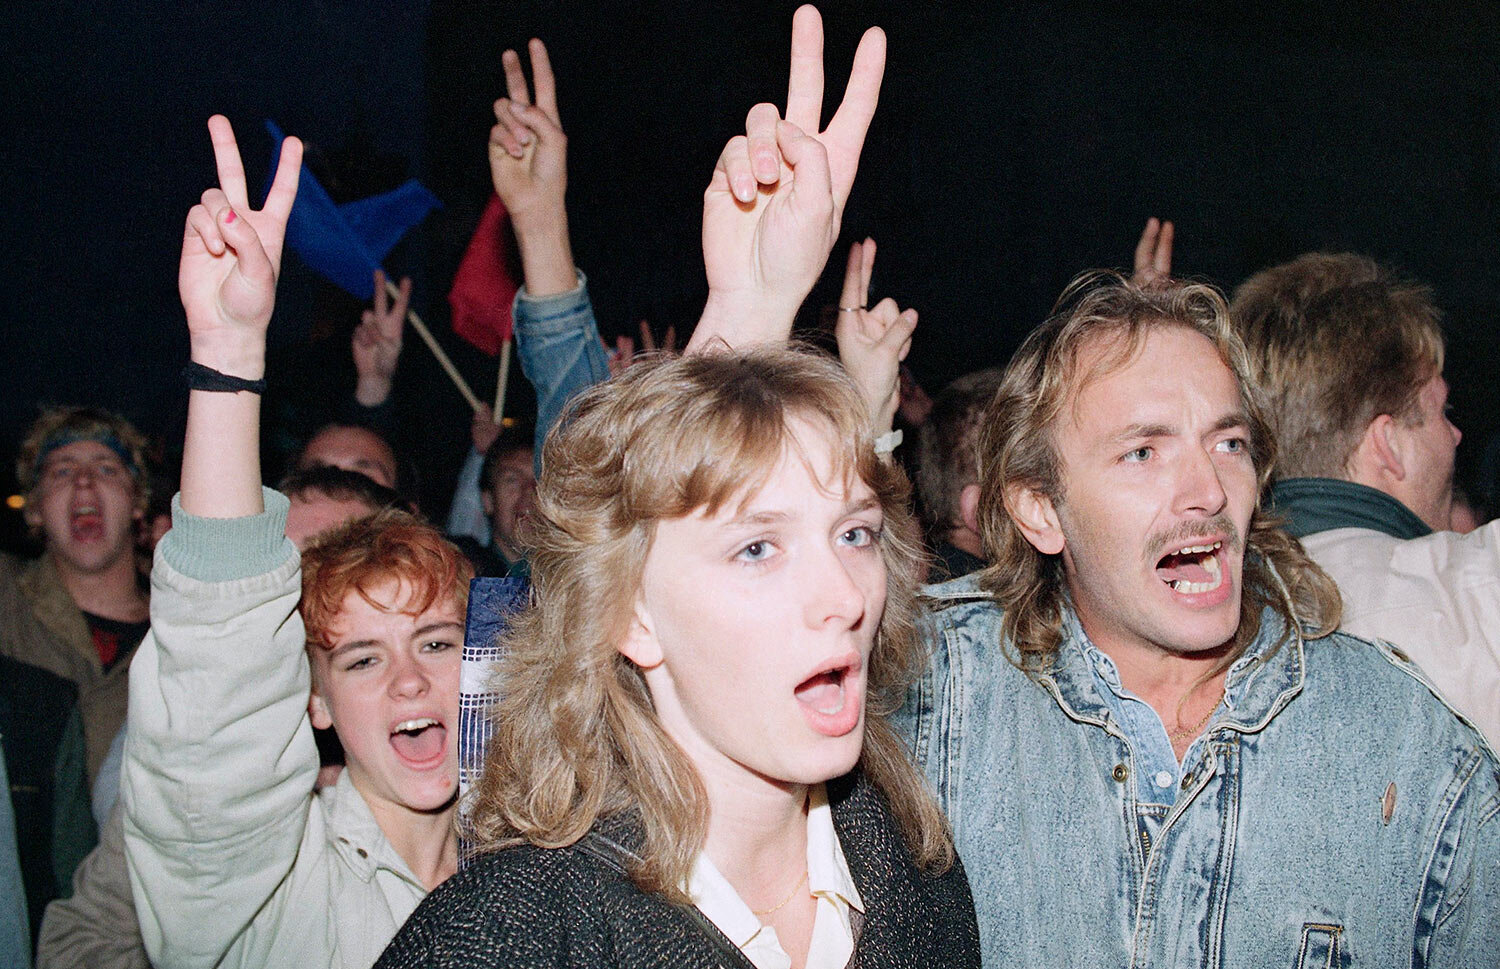 East German demonstrators flash victory signs as they demand democratic reforms in a massive protest in downtown East Berlin, Oct. 7, 1989. (AP Photo/Heribert Proepper)